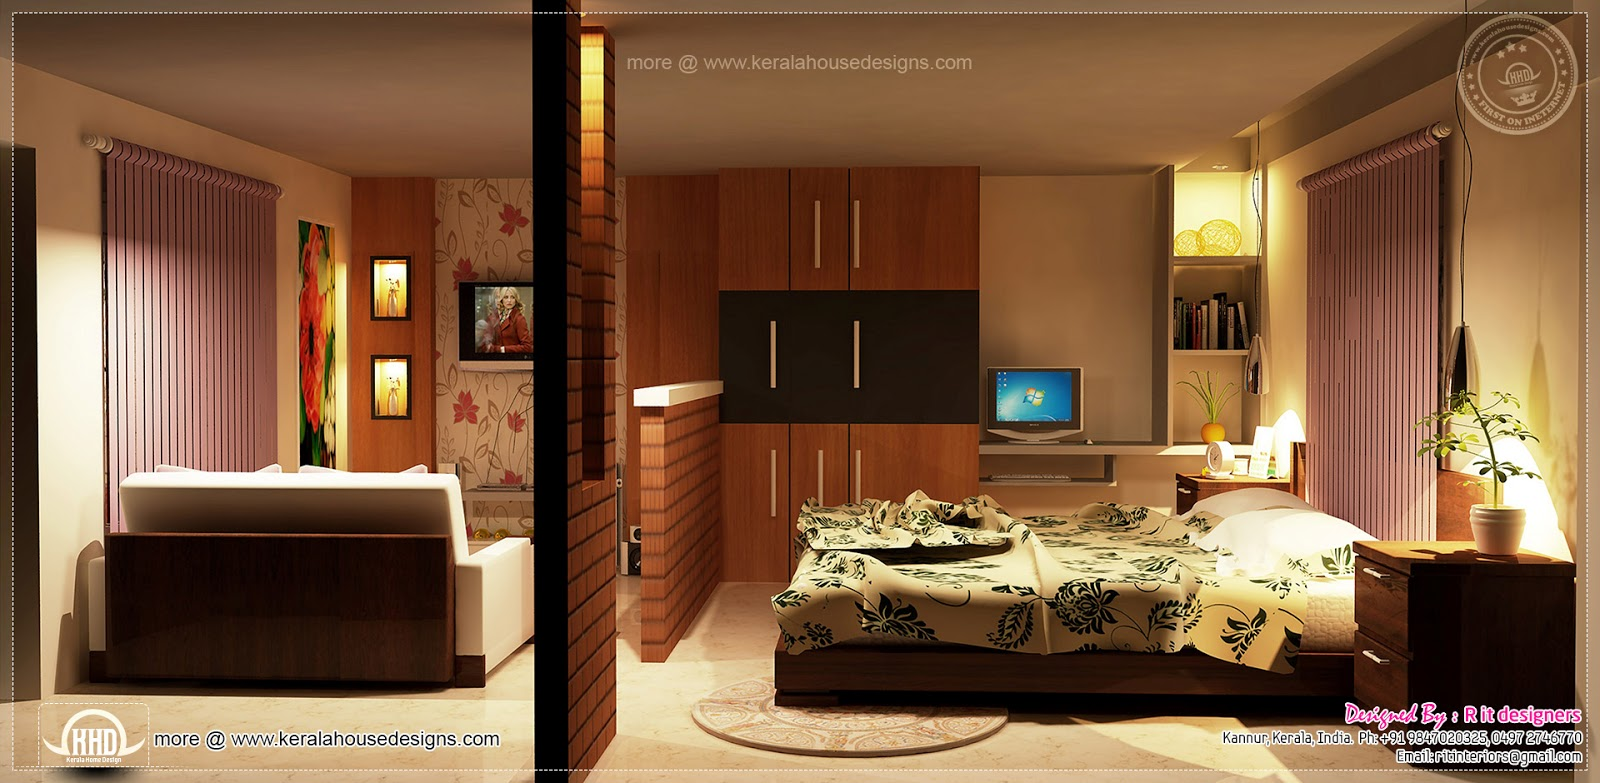 Home Design Ideas Interior: Home Interior Designs By Rit Designers